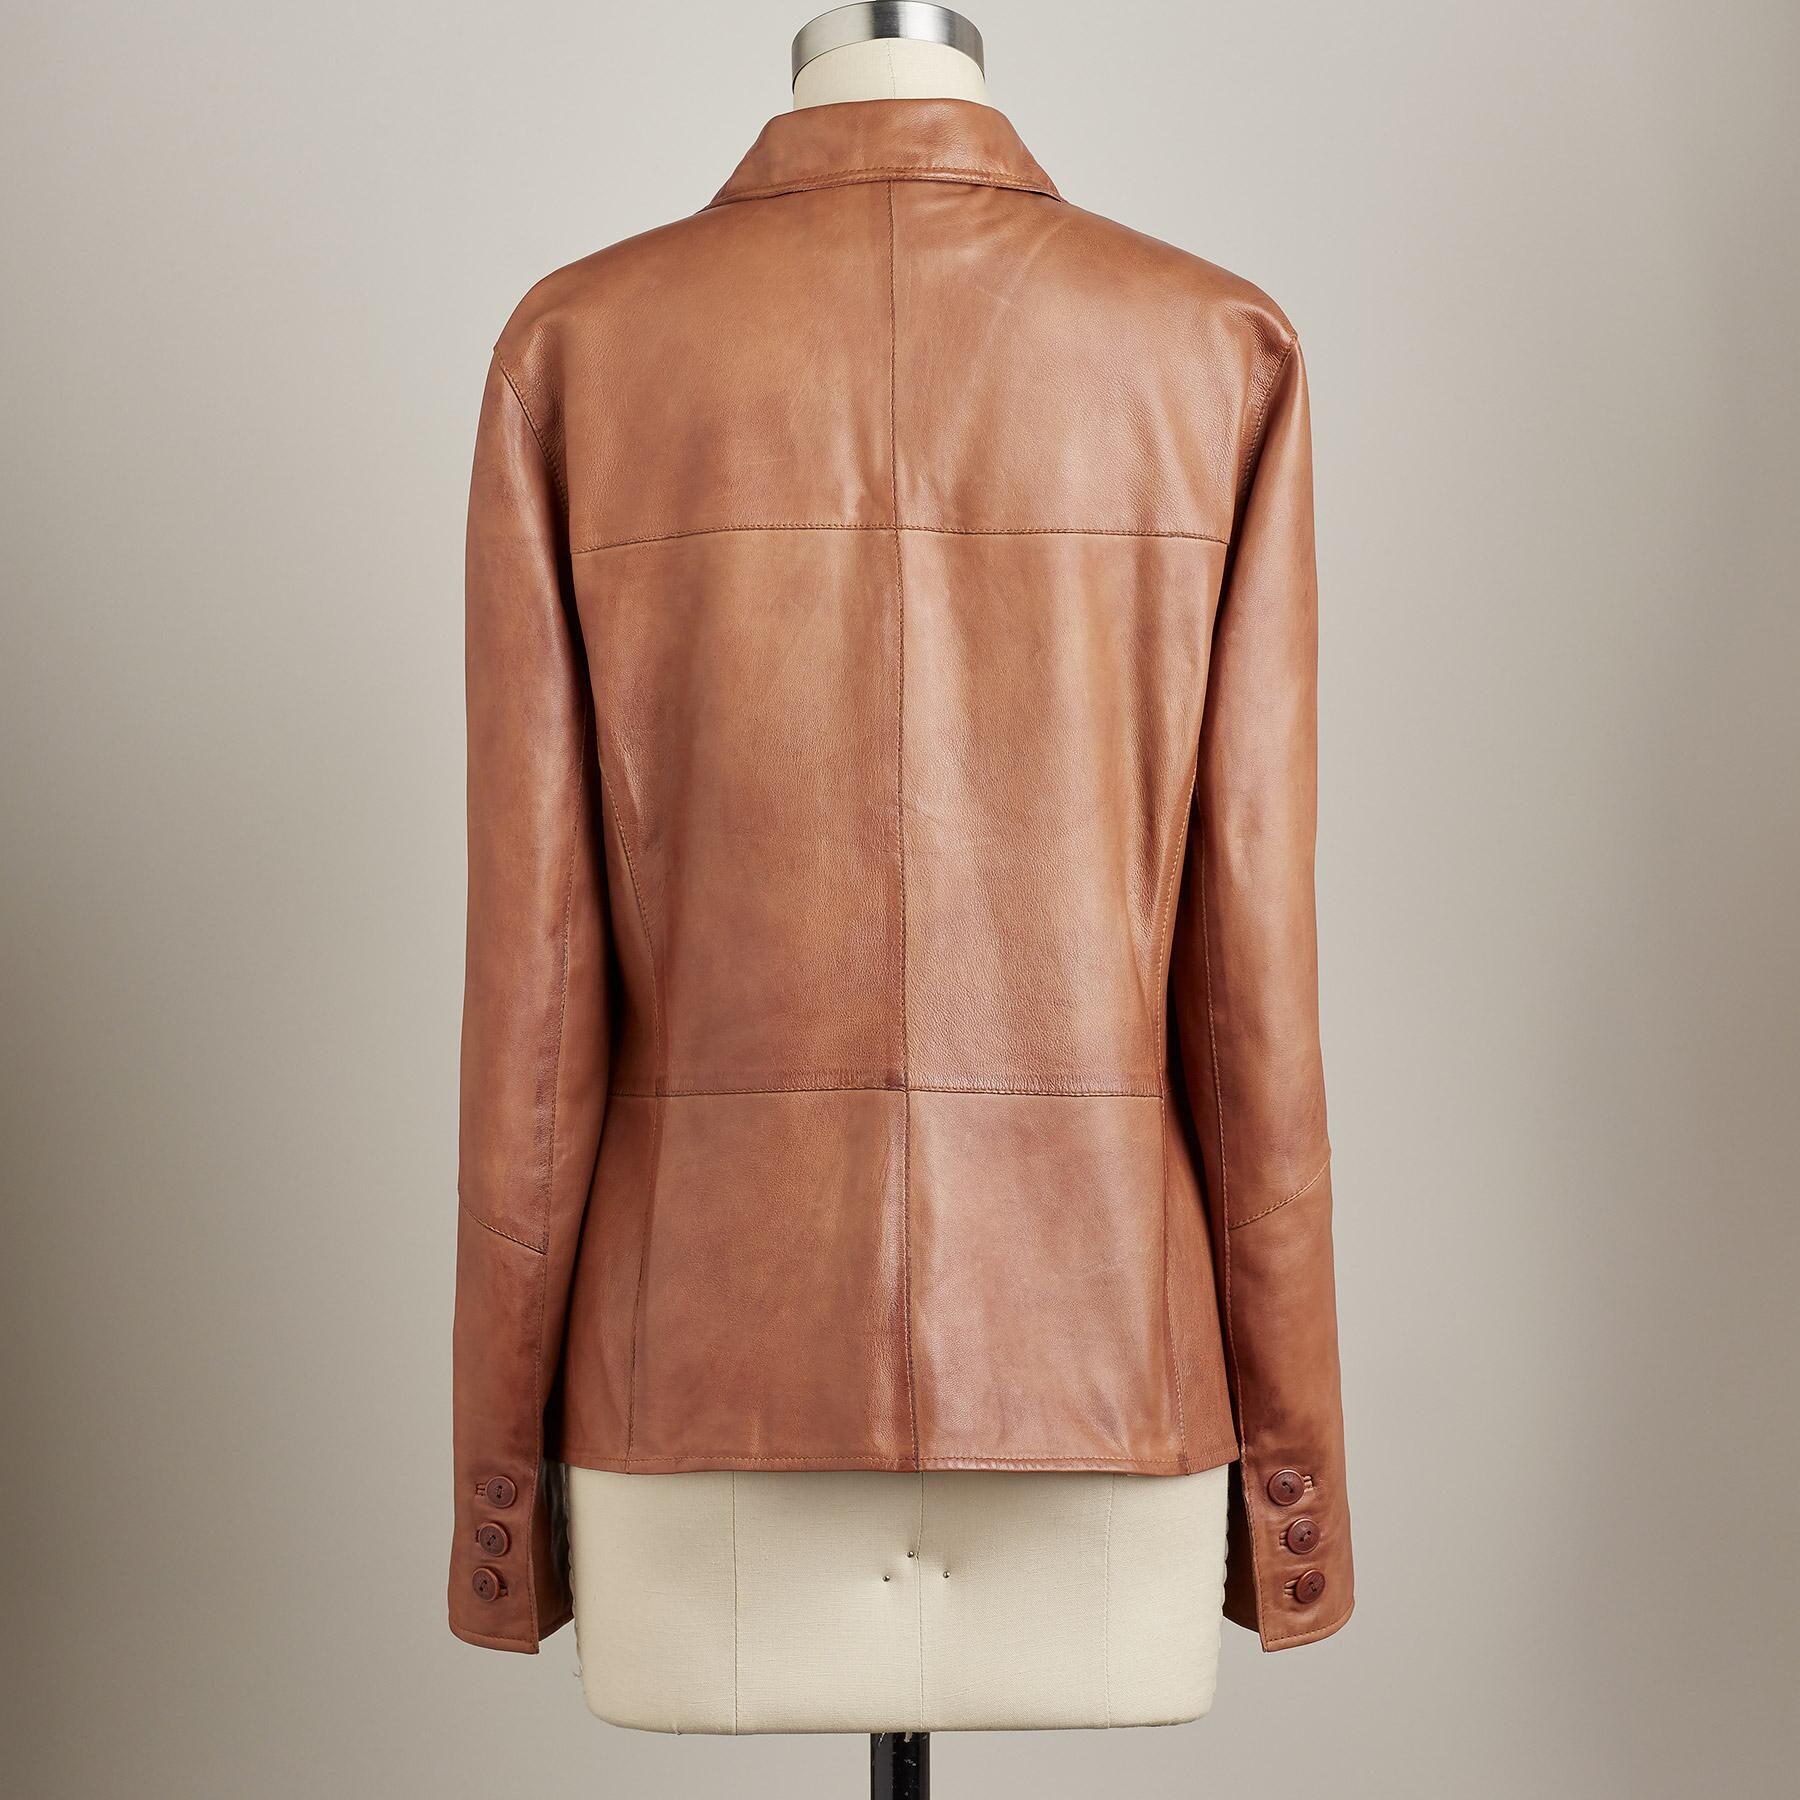 THE NASHVILLE LEATHER JACKET - PETITES: View 3